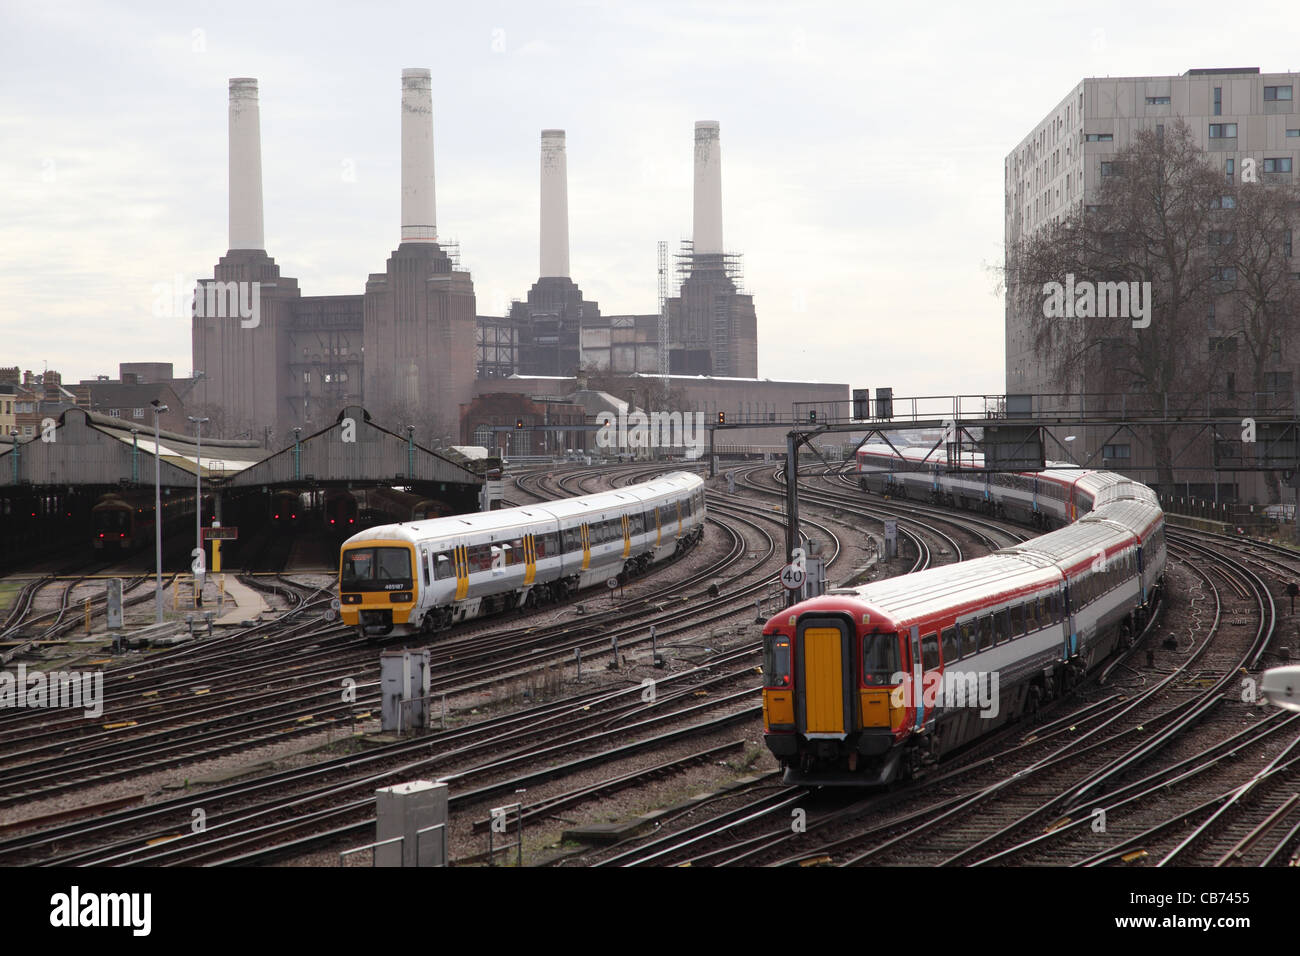 Railway Lines near London's Victoria Station with Battersea Power Station in the Background - Stock Image